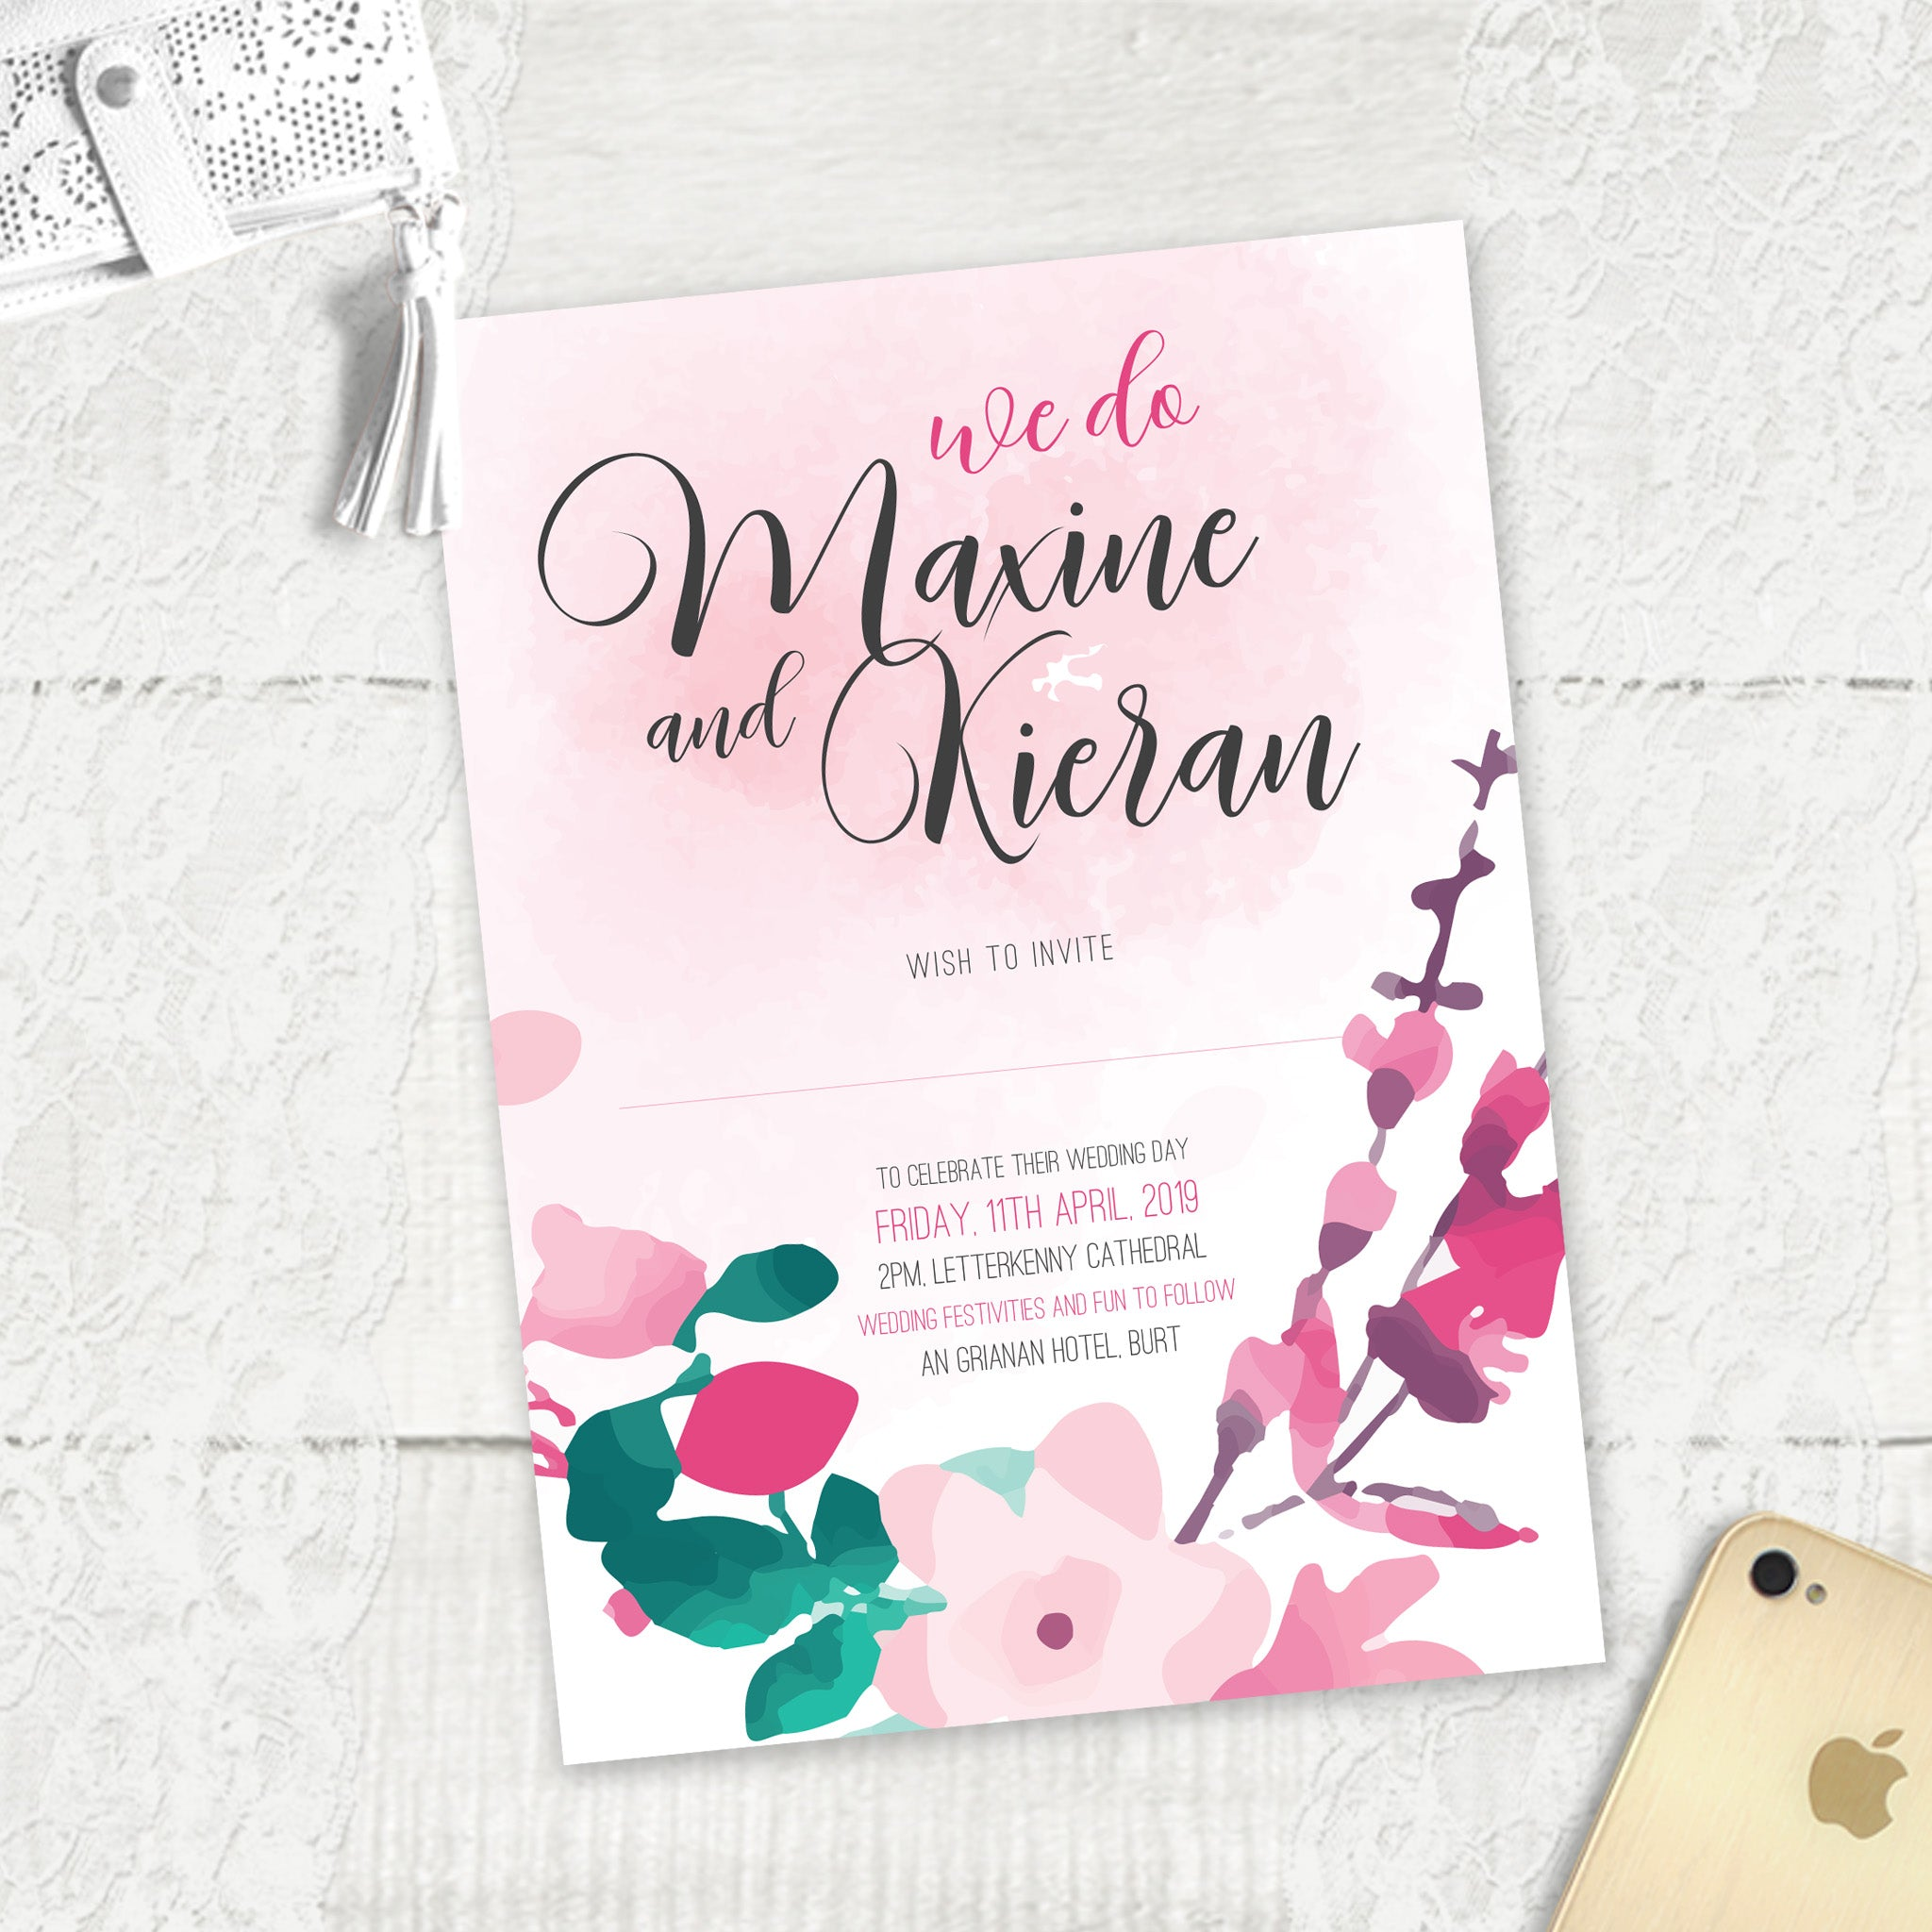 Cherry Blossom 2 - Main Invite